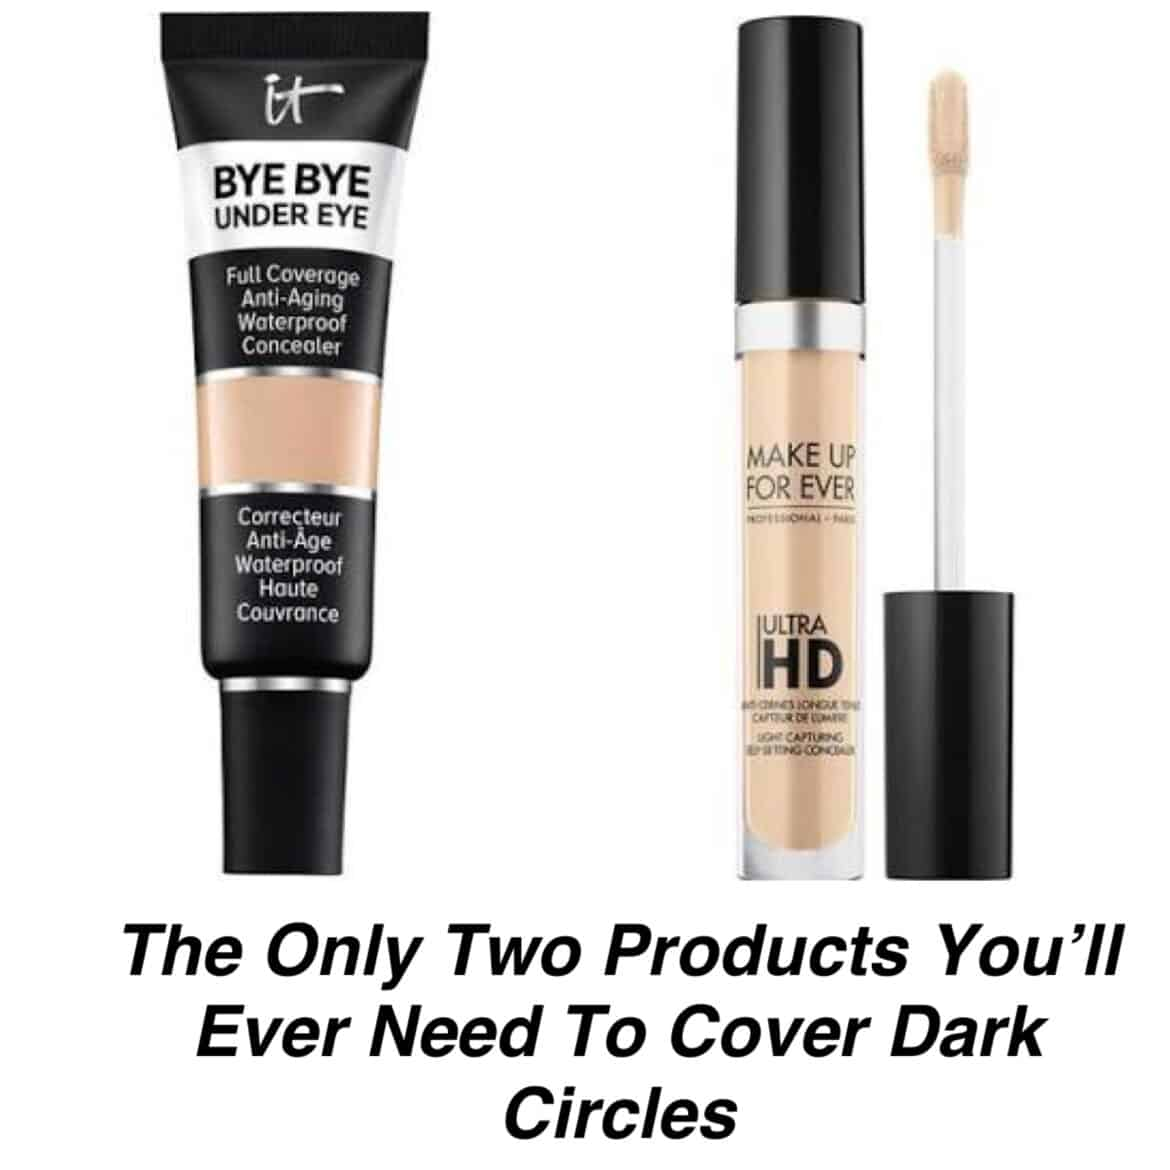 The Only Two Products You'll Ever Need To Cover Dark Circles